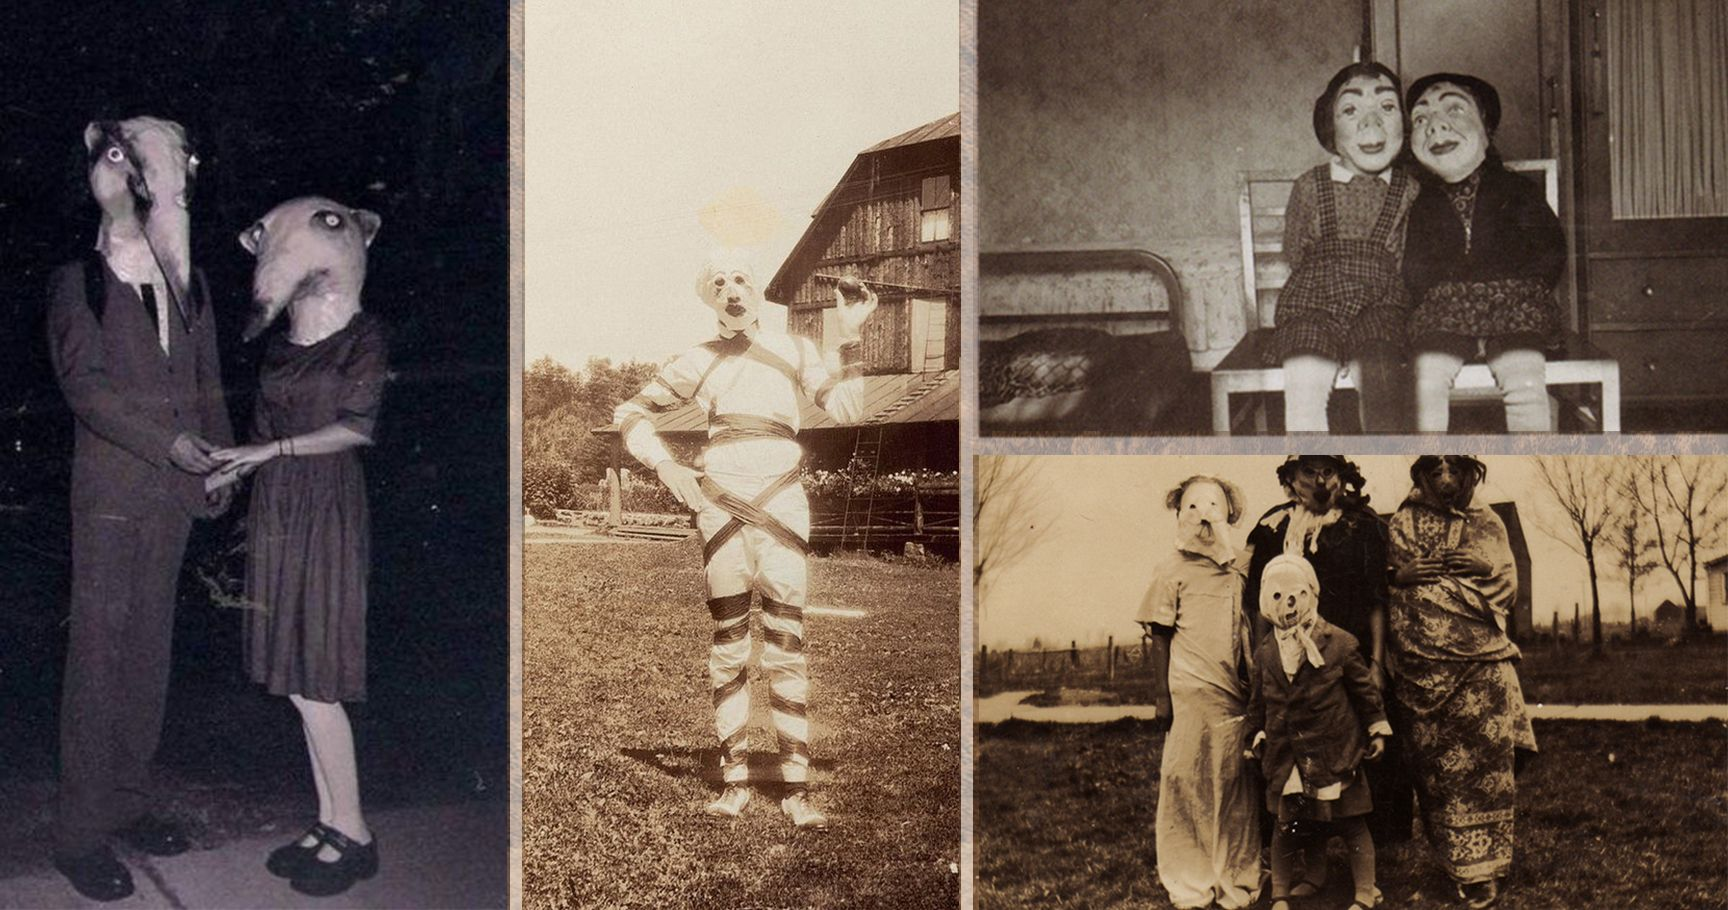 15 Vintage Halloween Costumes That Will Scare The Bejesus Out Of You